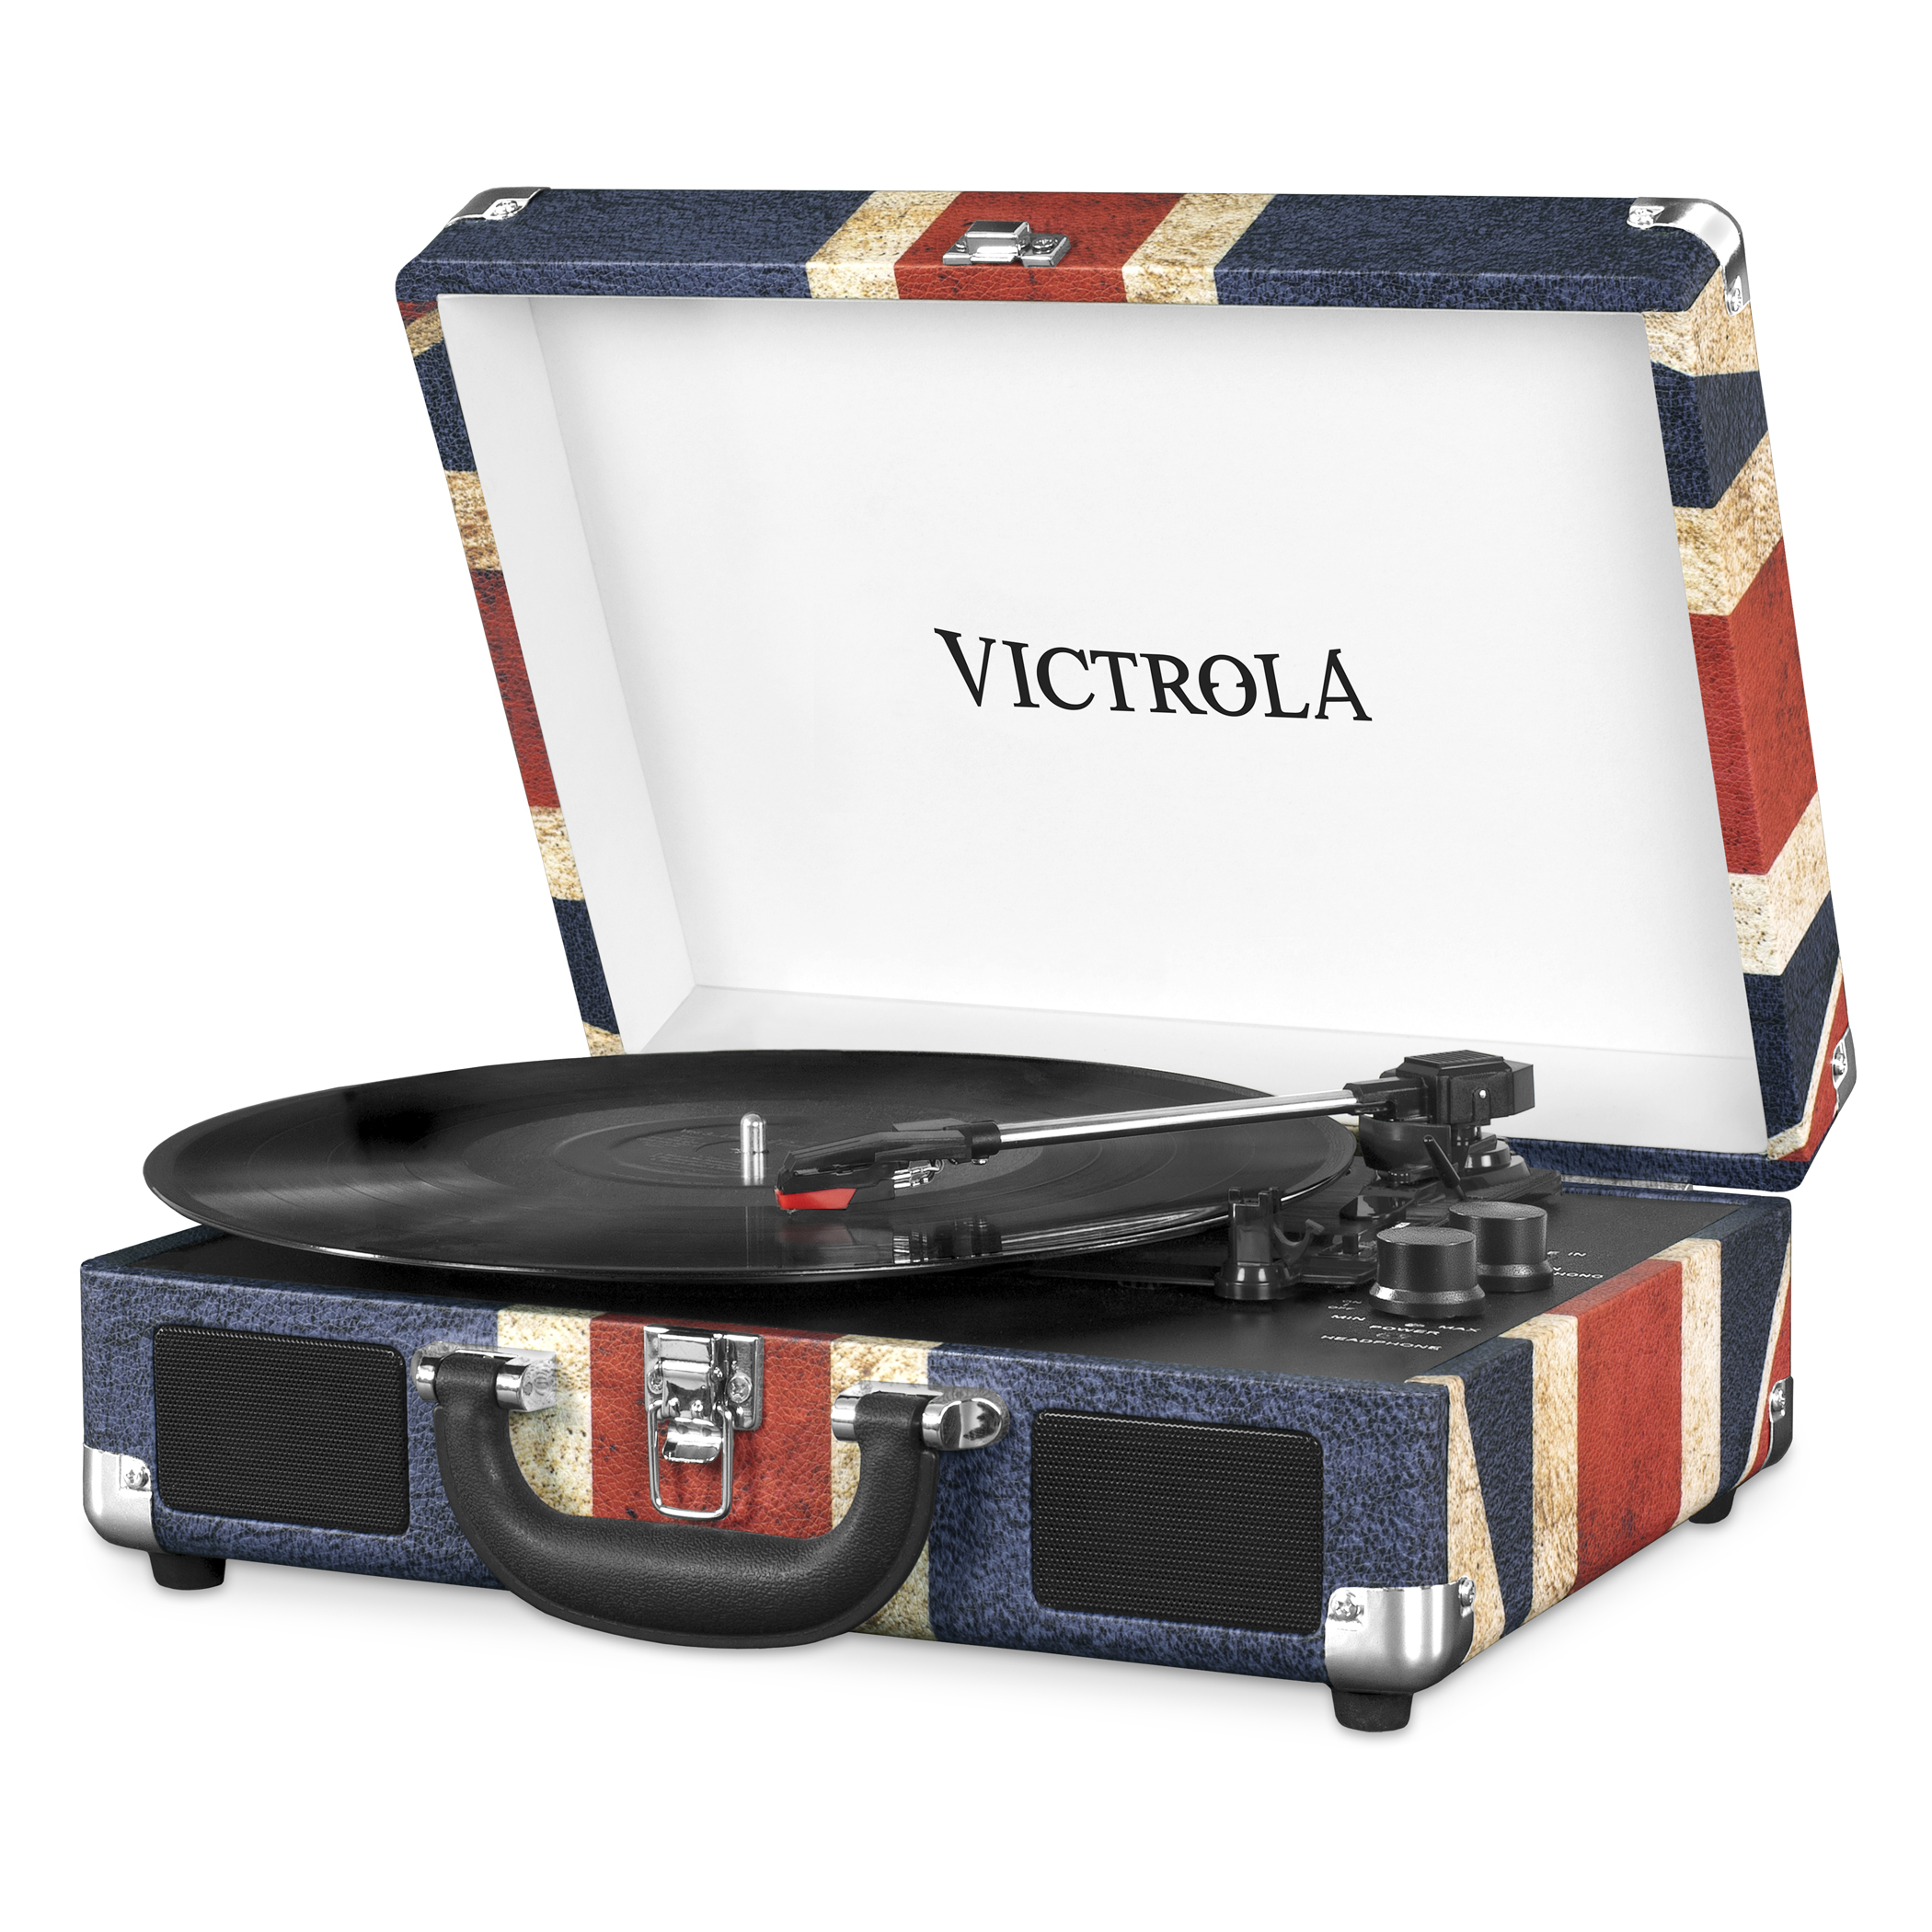 VSC-550BT-UK, suitcase record player 3-speed stereo speakers, BT,immit. leather, UK-flag